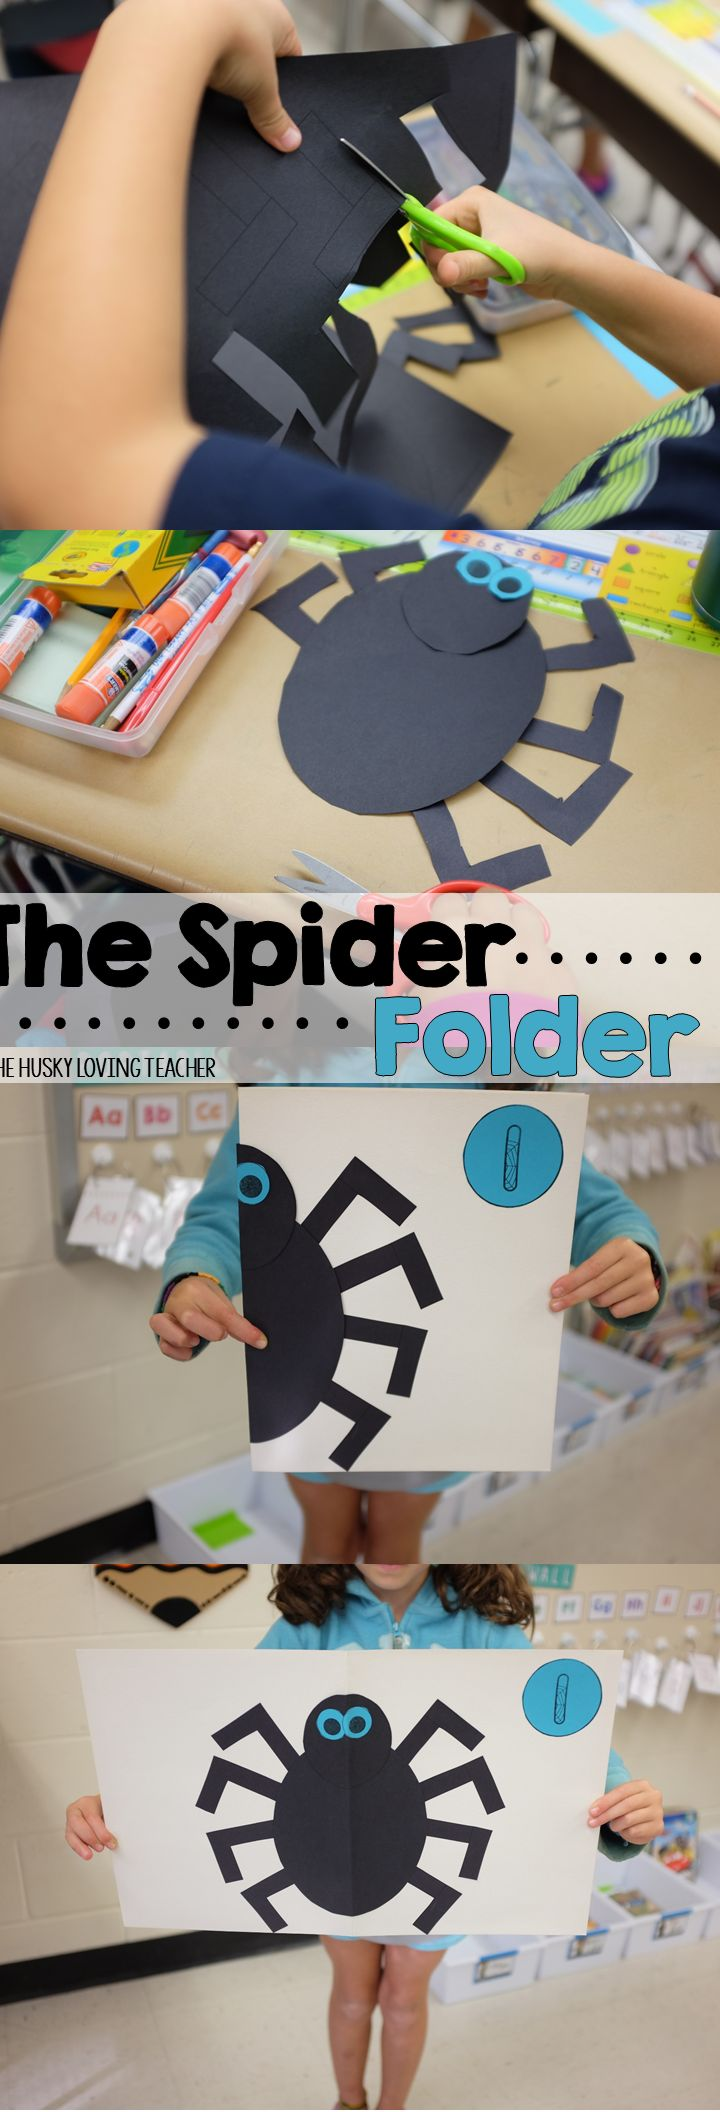 Have your students keep their spider research (worksheets, flipbooks, pictures) inside of this fun folder! [Resource from: The Husky Loving Teacher]